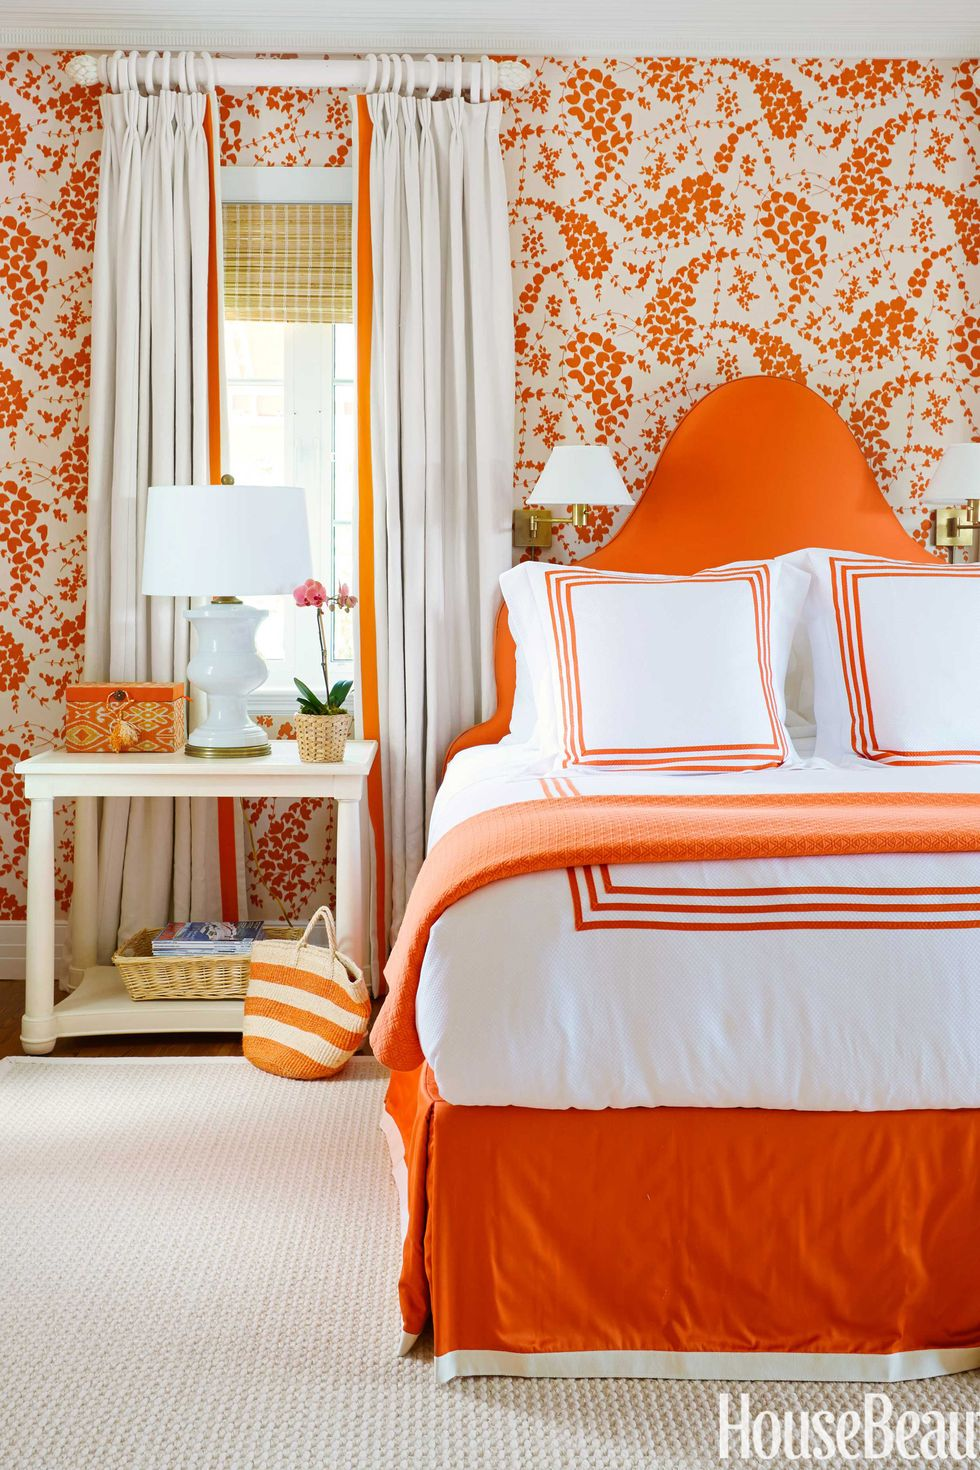 54c498a41706c_-_09-hbx-orange-bedroom-1114-de